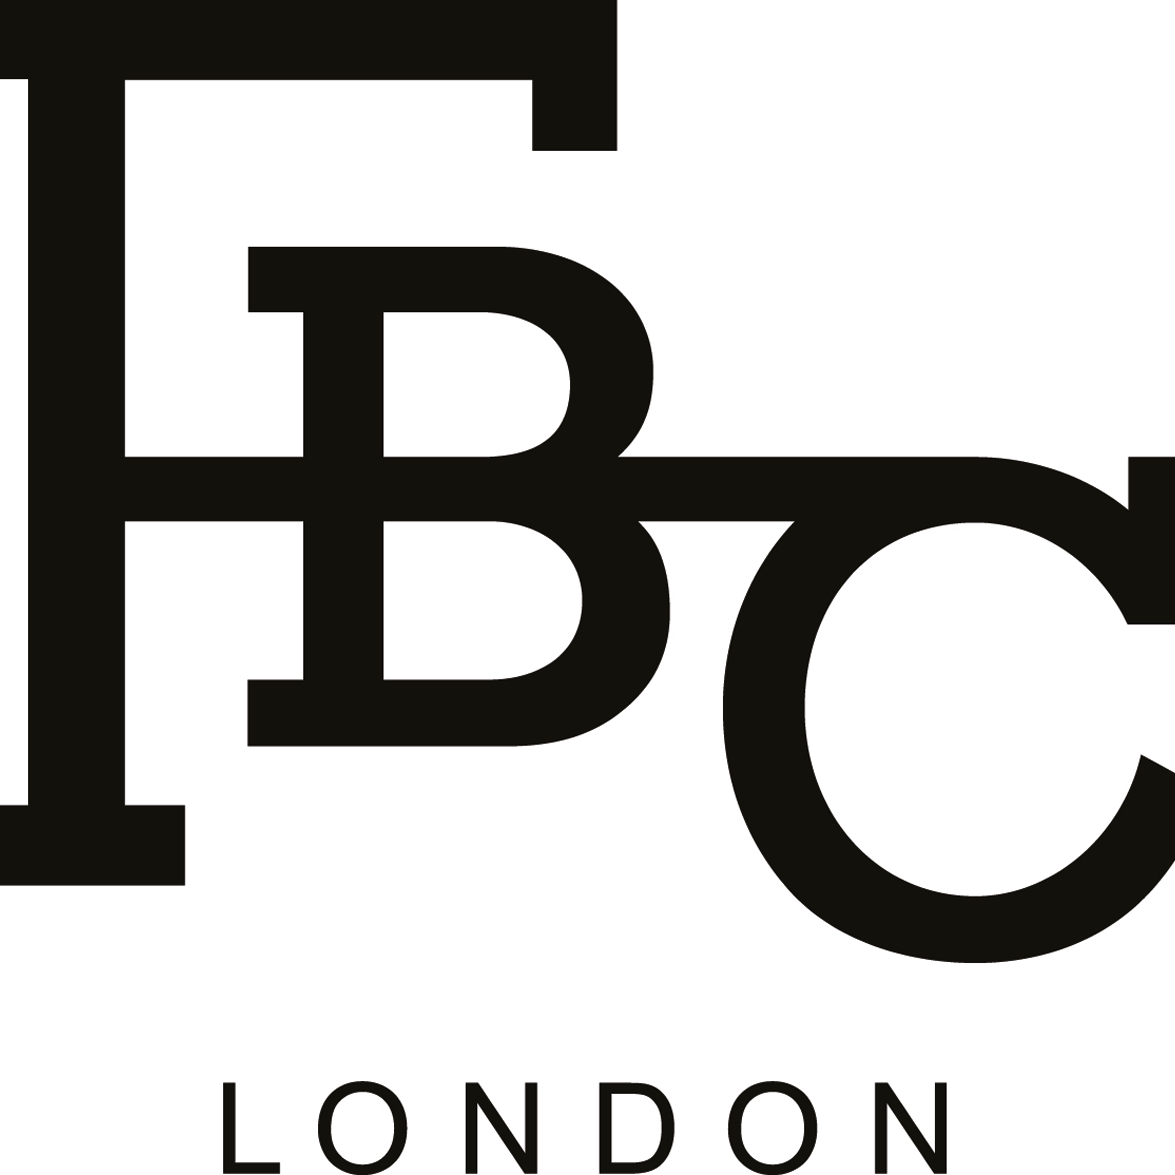 fbc london- company logo